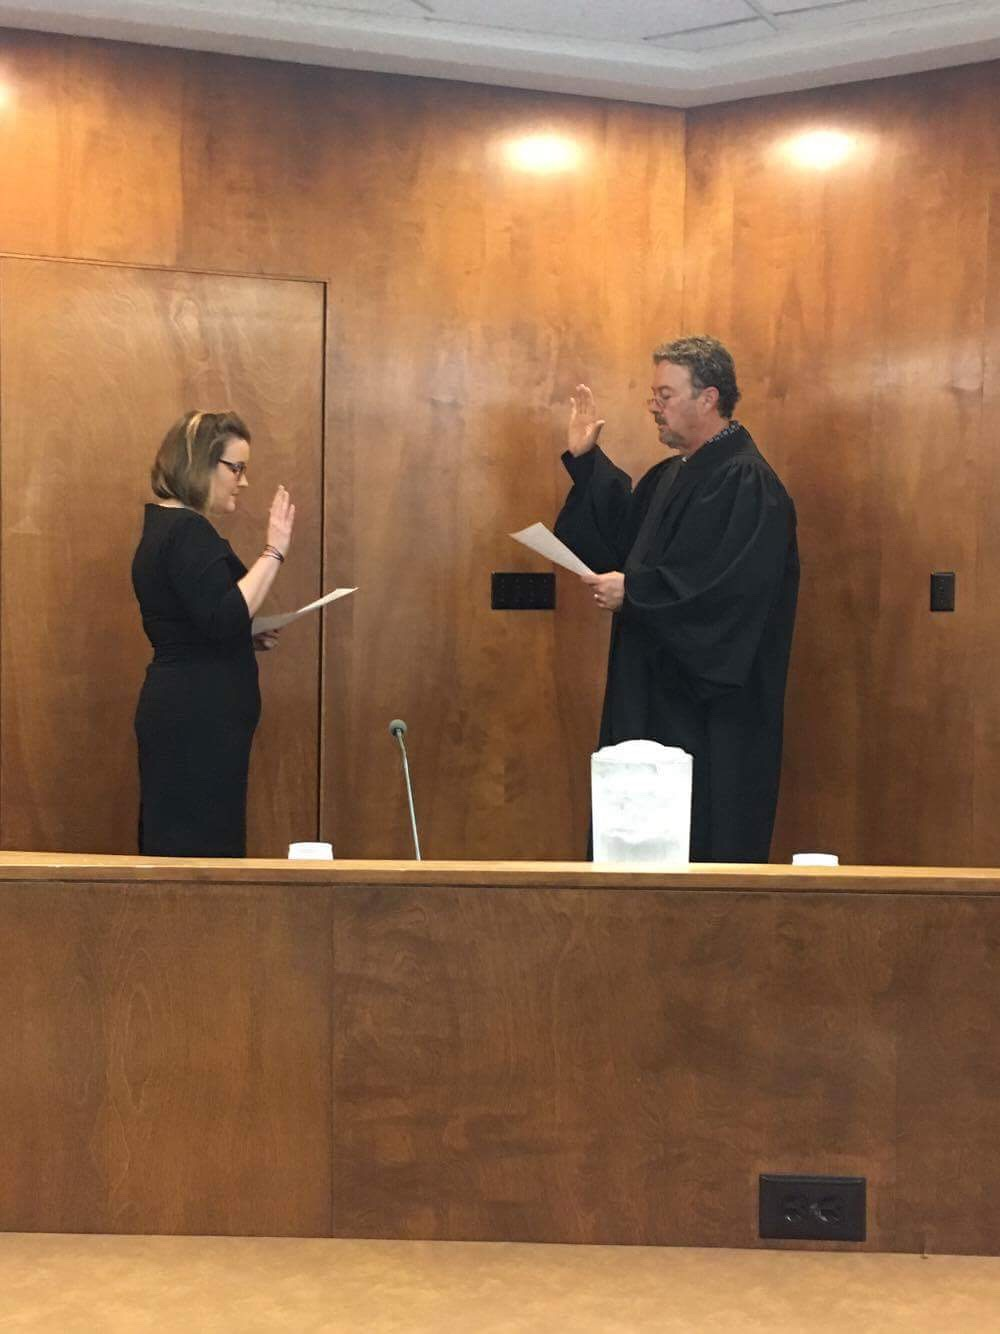 Ward 4 City Councilwoman Christine Hamner was sworn in by Municipal Judge Mike King at Monday night's City Council meeting. (Photo: Kasey St. John).